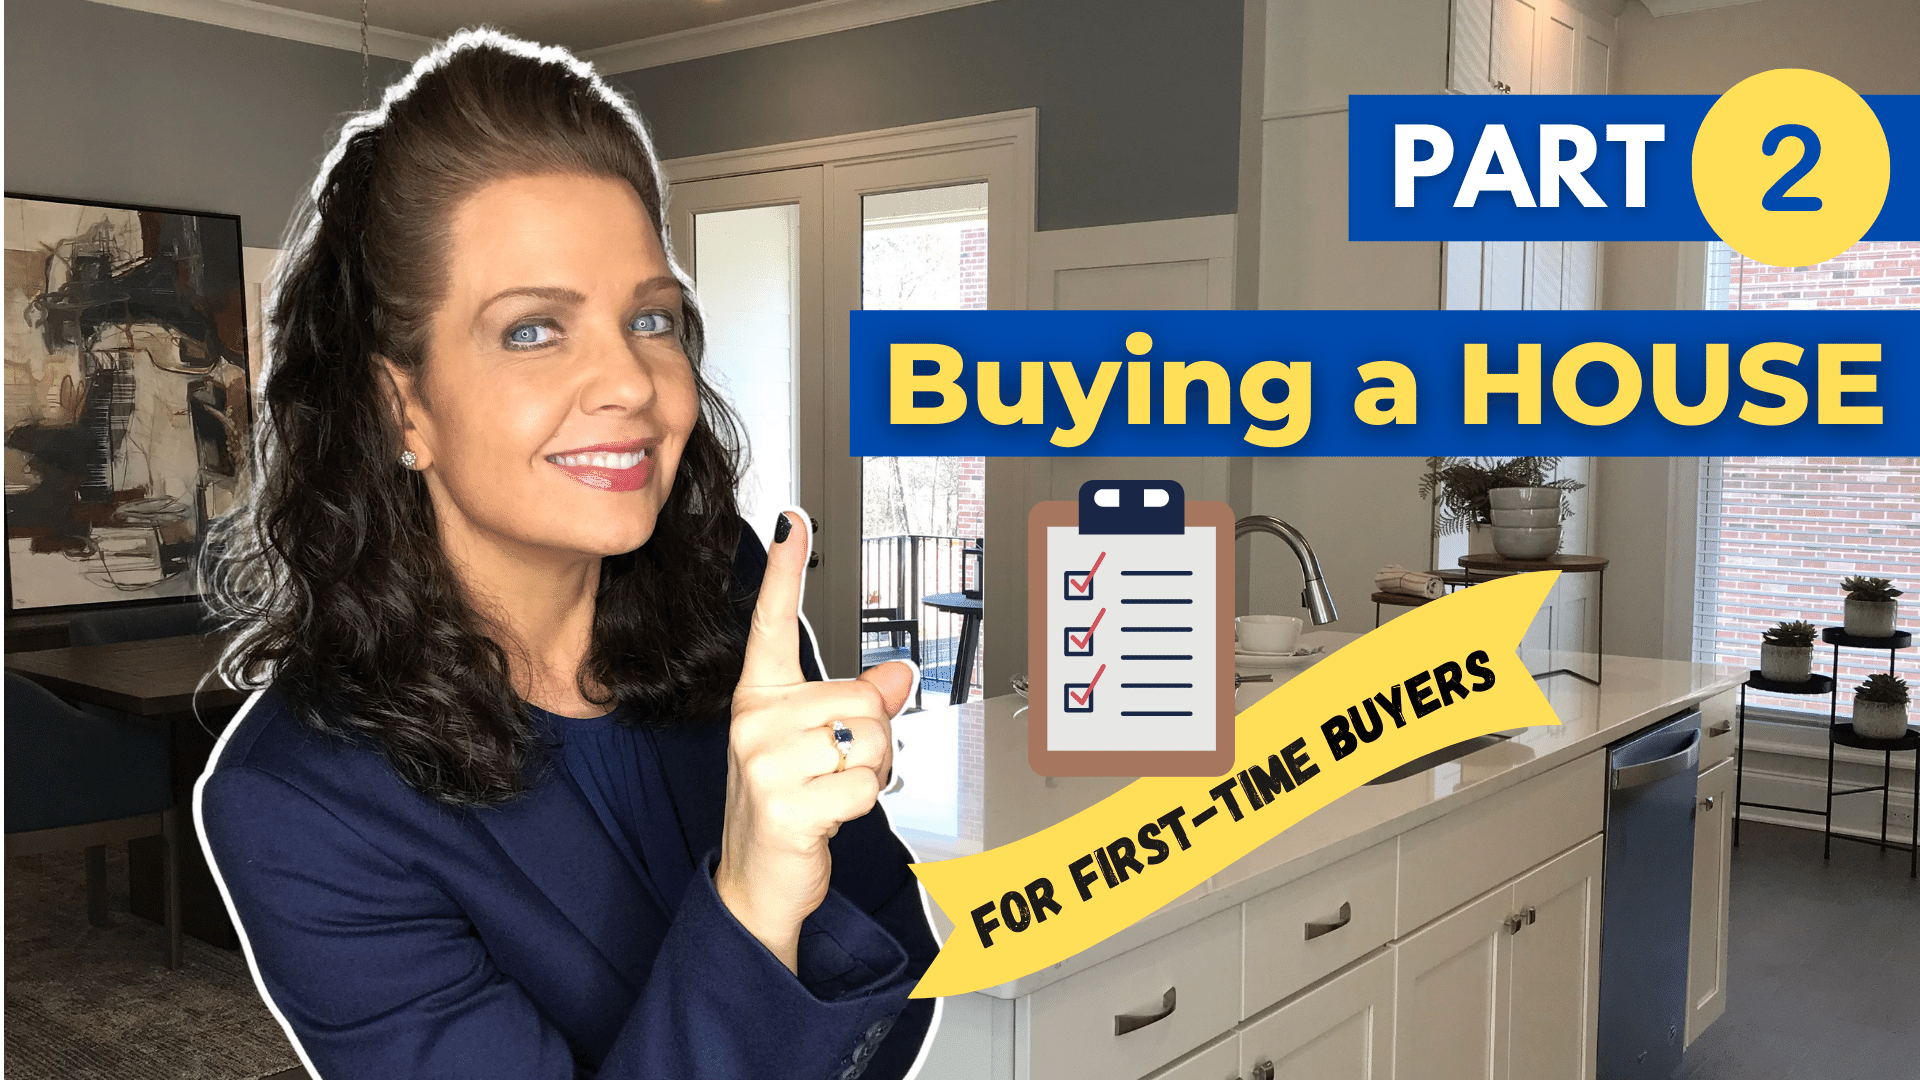 Buying a House Checklist for First-Time Buyers – Part 2